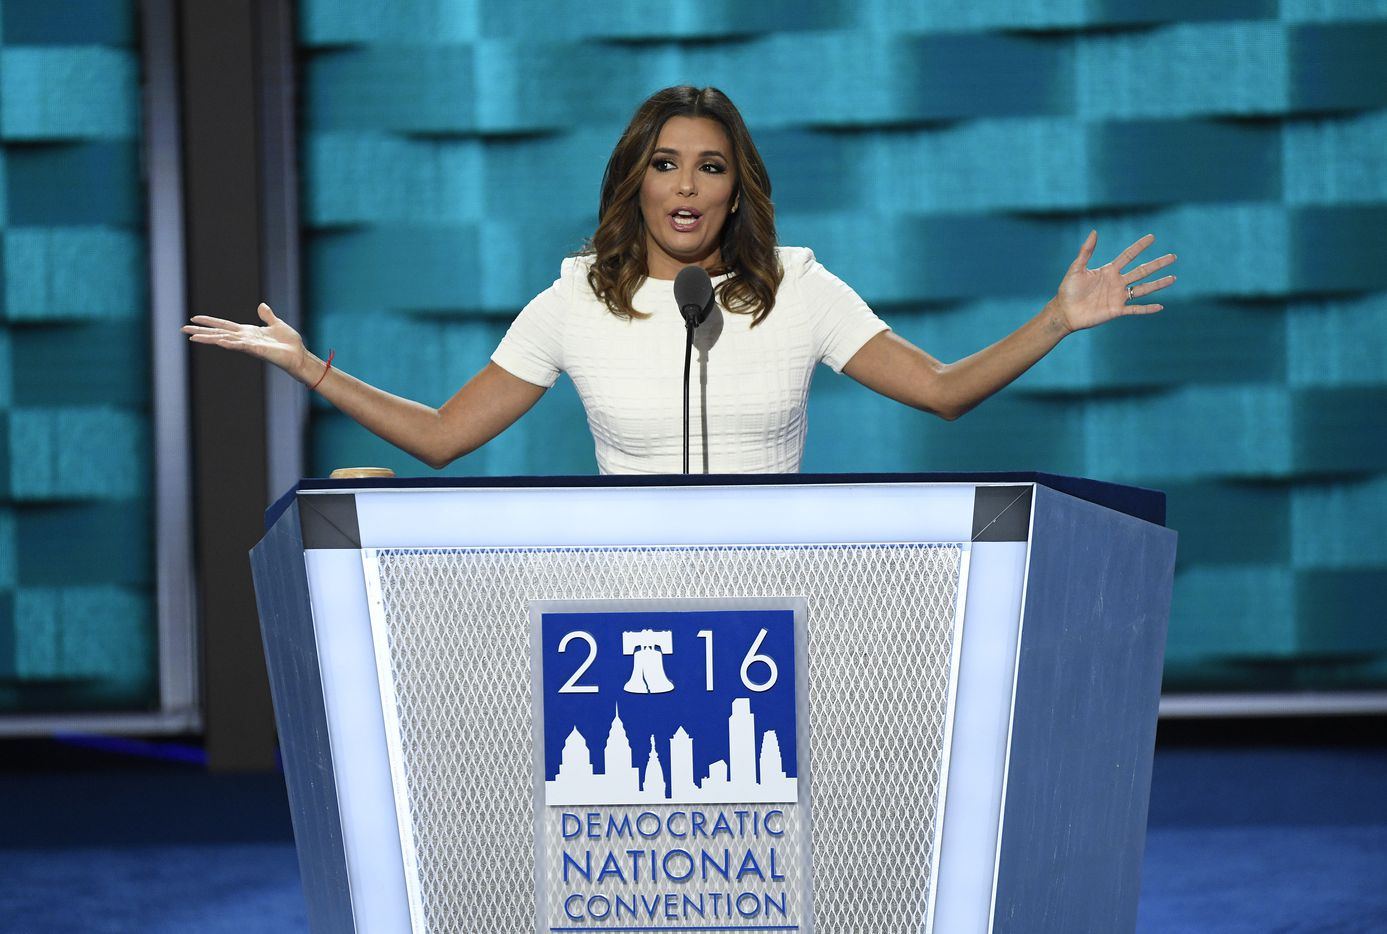 Actress Eva Longoria speaks during the Democratic National Convention.